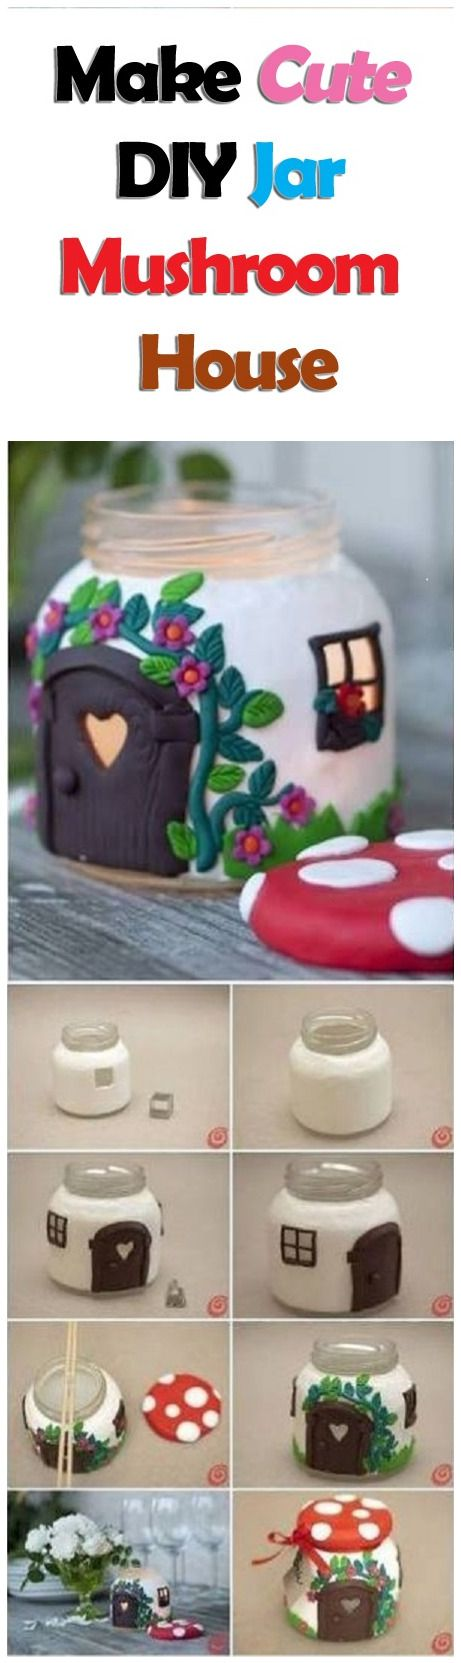 How to Make Cute DIY Jar Mushroom House